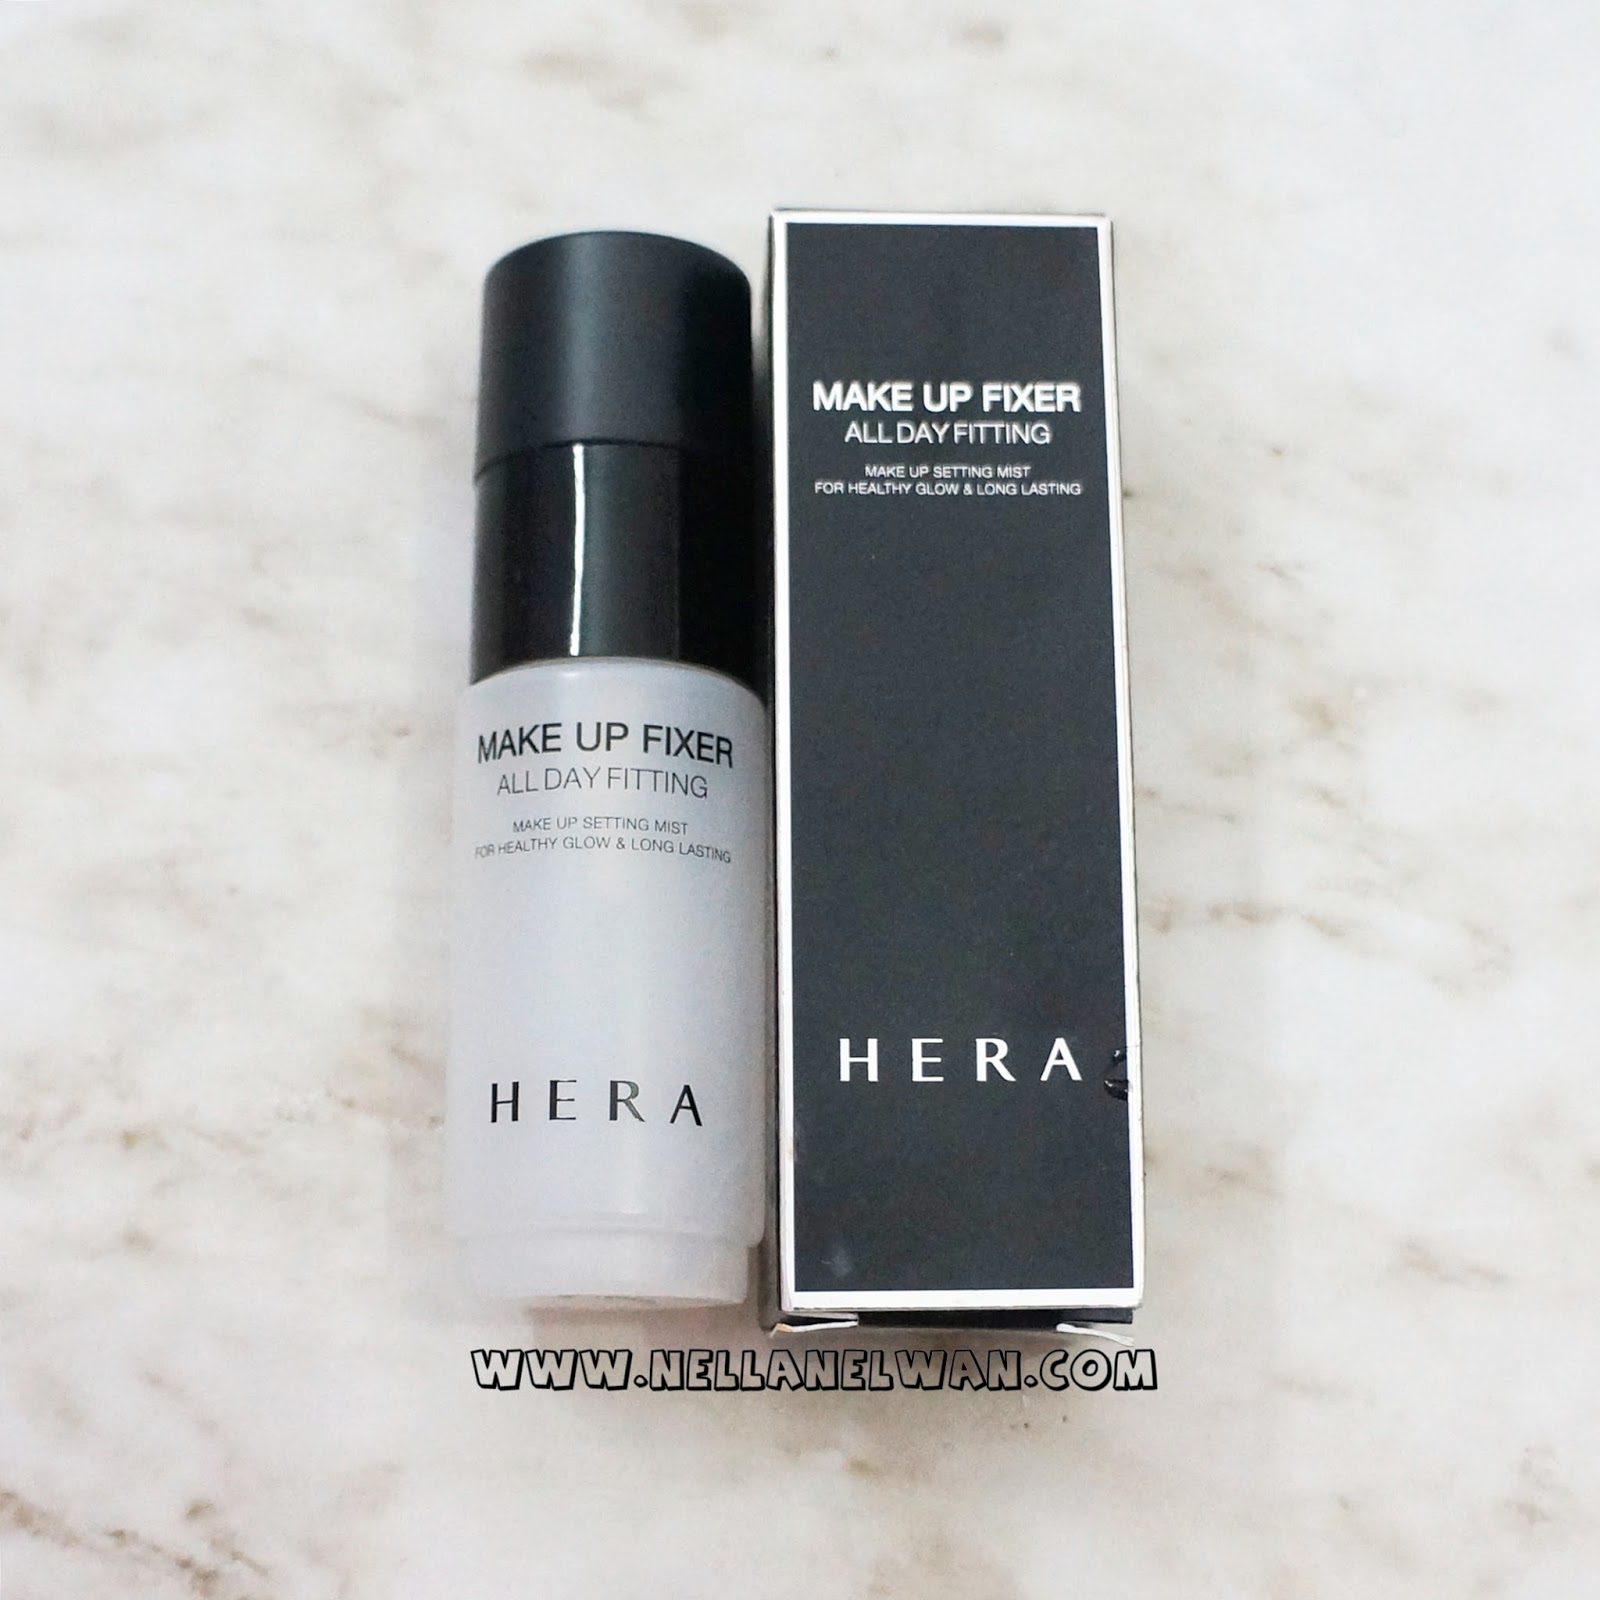 hera make up fixer all day fitting spray review nellanelwan